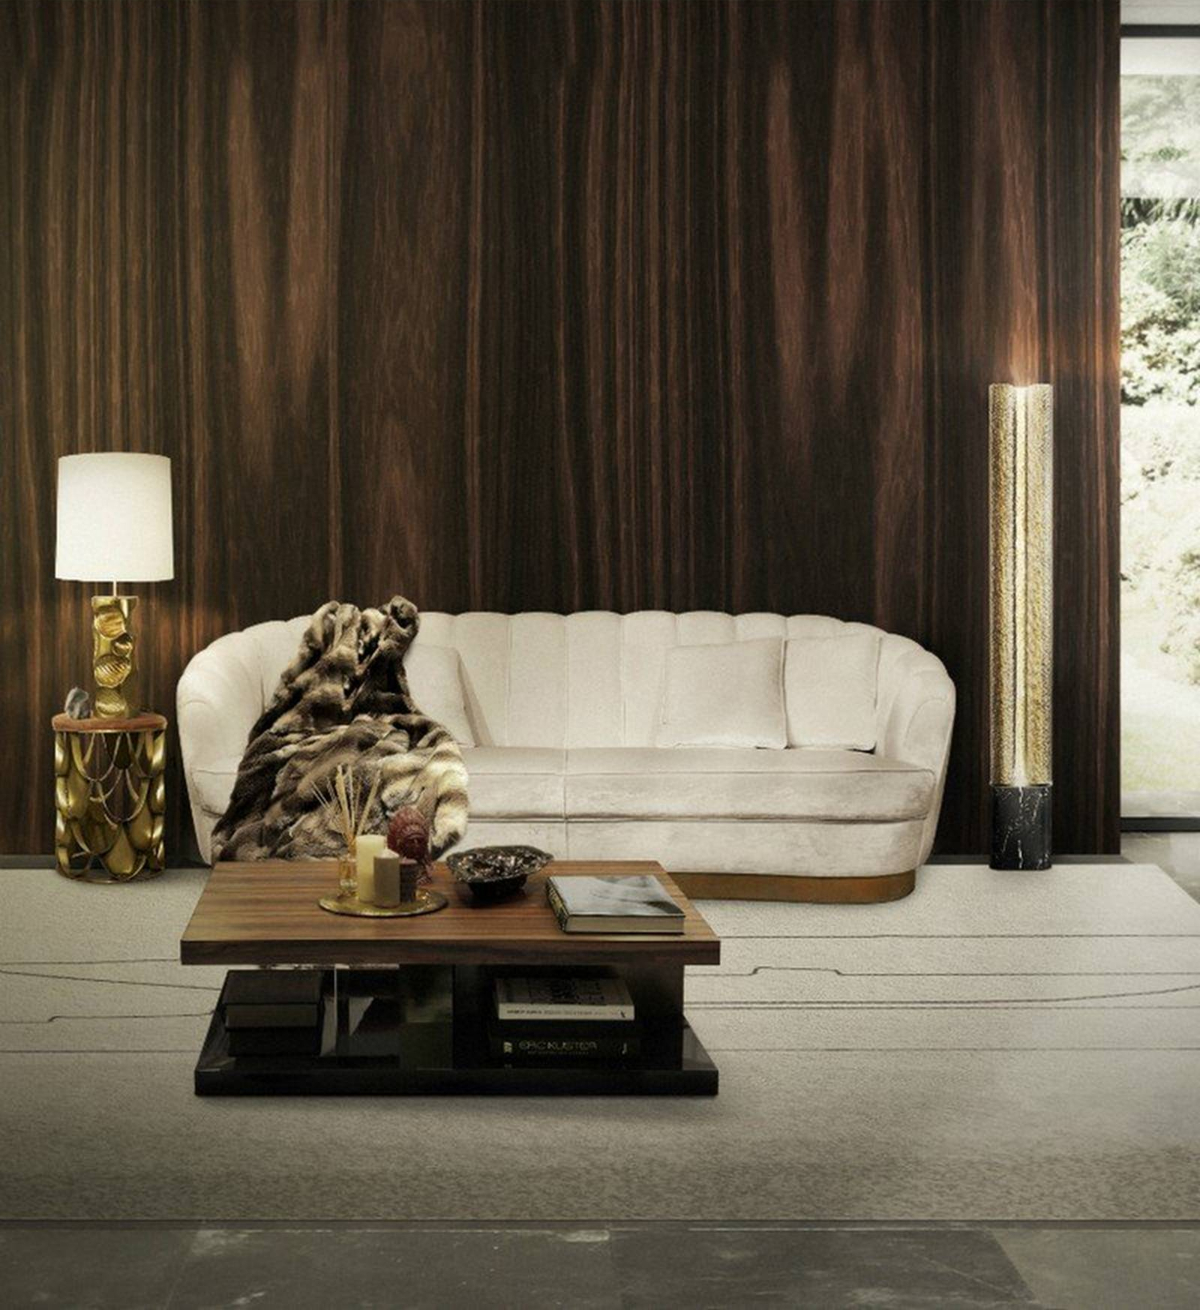 wooden center tables The Best Wooden Center Tables You Can Find 8 Interior Design Trends for 2018 to Enhance Your Home Decor 4   d   jpg